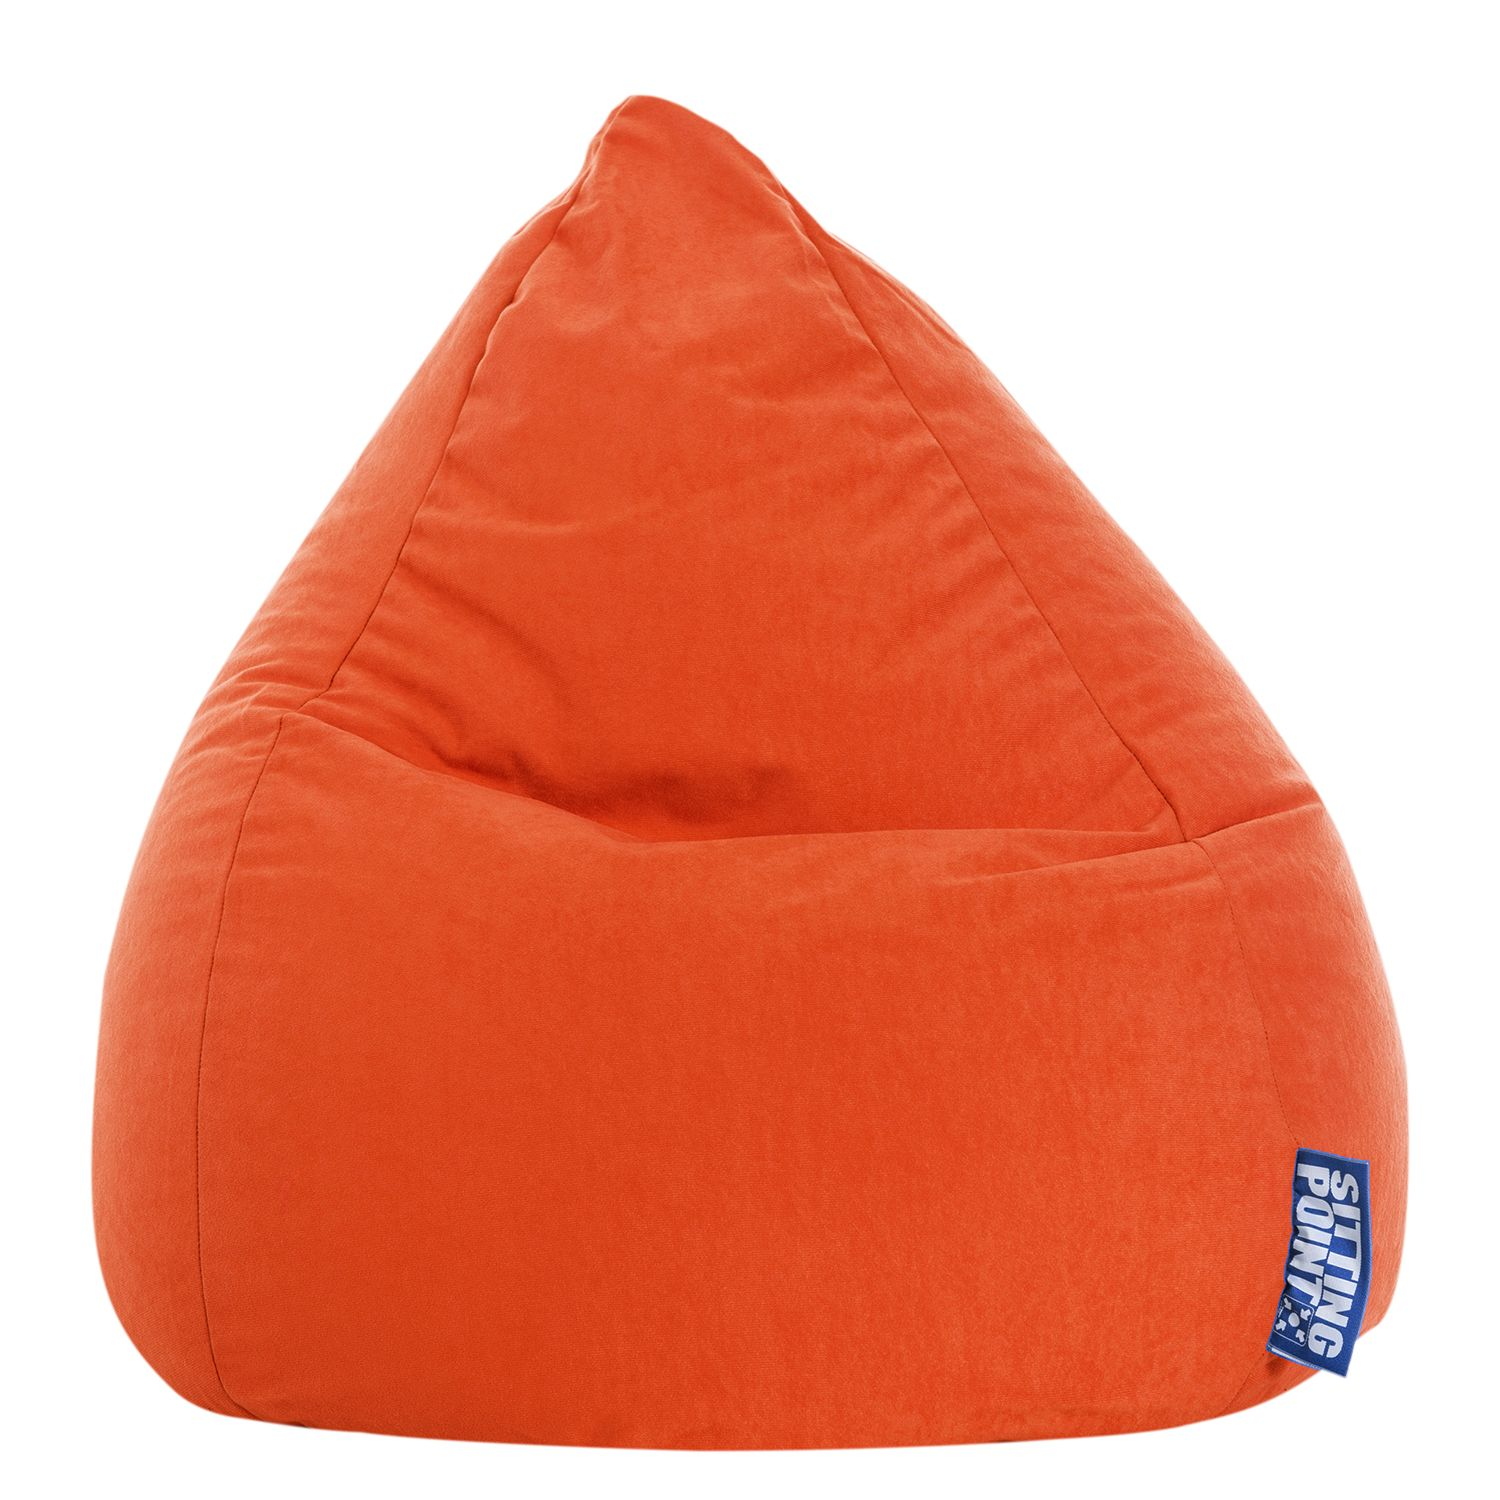 goedkoop Zitzak Easy L geel Oranje SITTING POINT